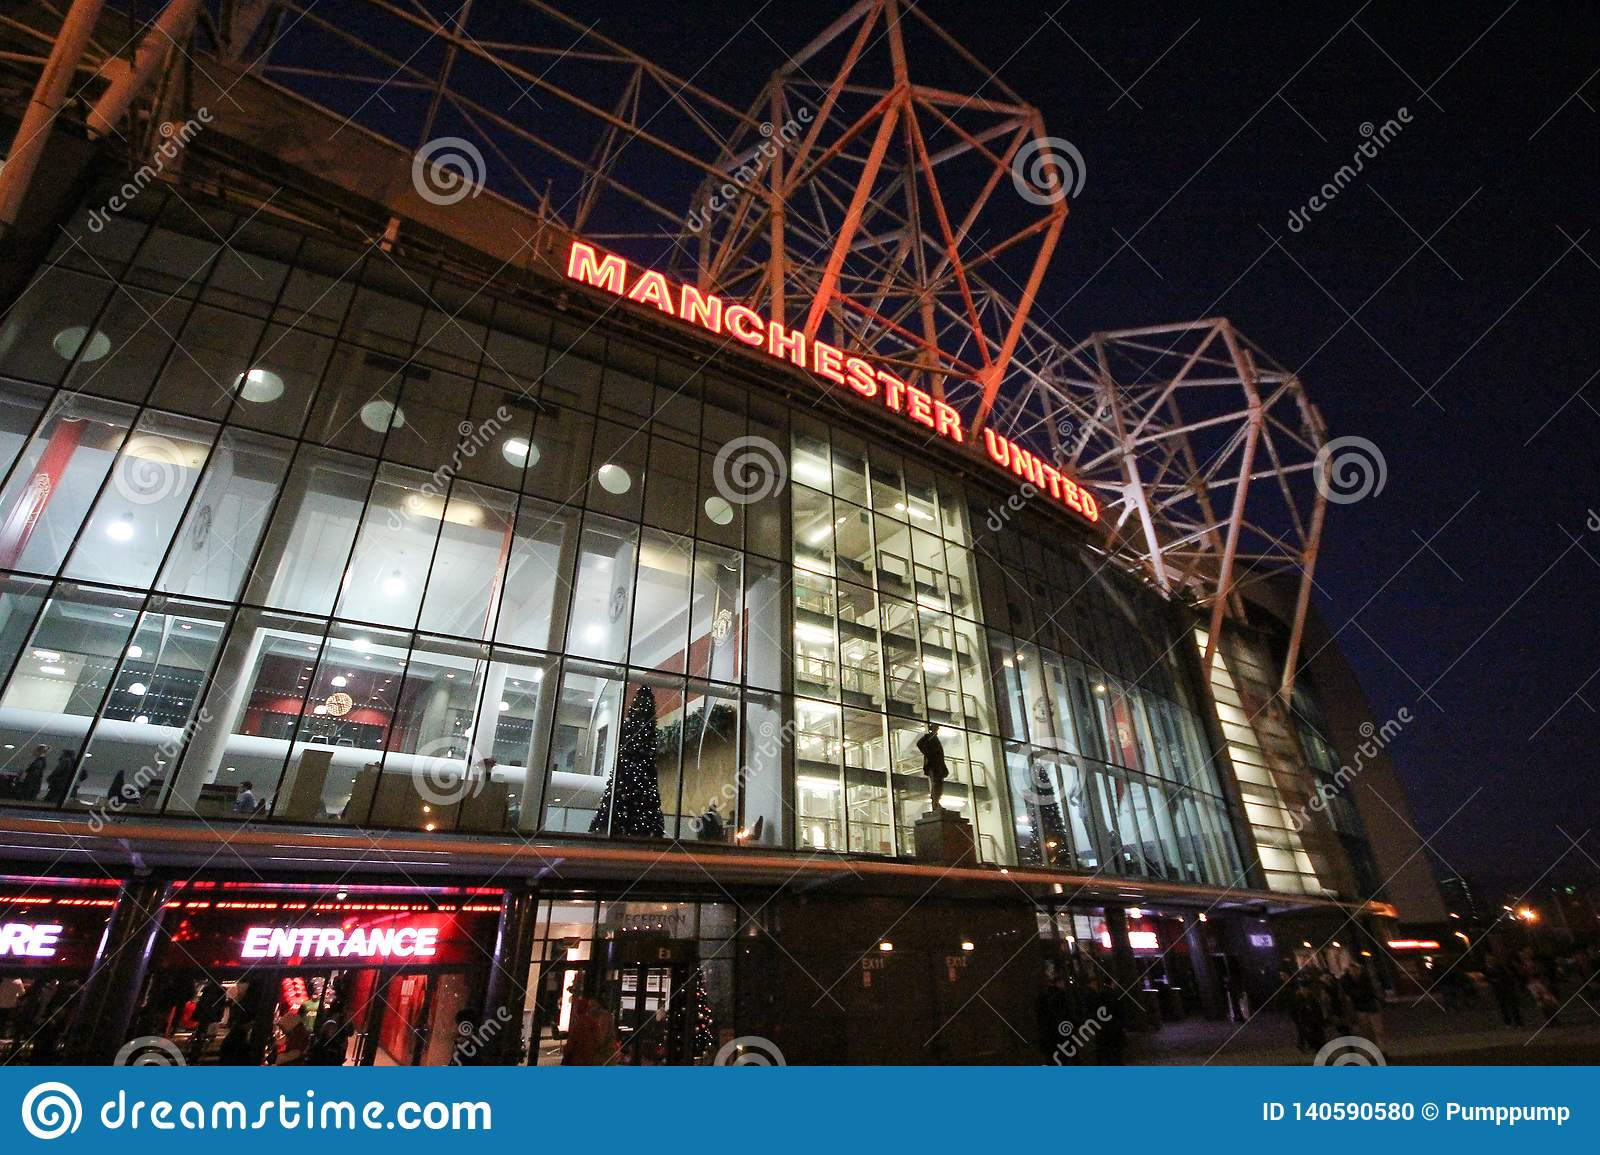 manchester england december 5 2013 in front of the manchester united stadium or old trafford stadium is most famous editorial image image of famous editorial 140590580 https www dreamstime com manchester england december front united stadium old trafford most famous football image140590580